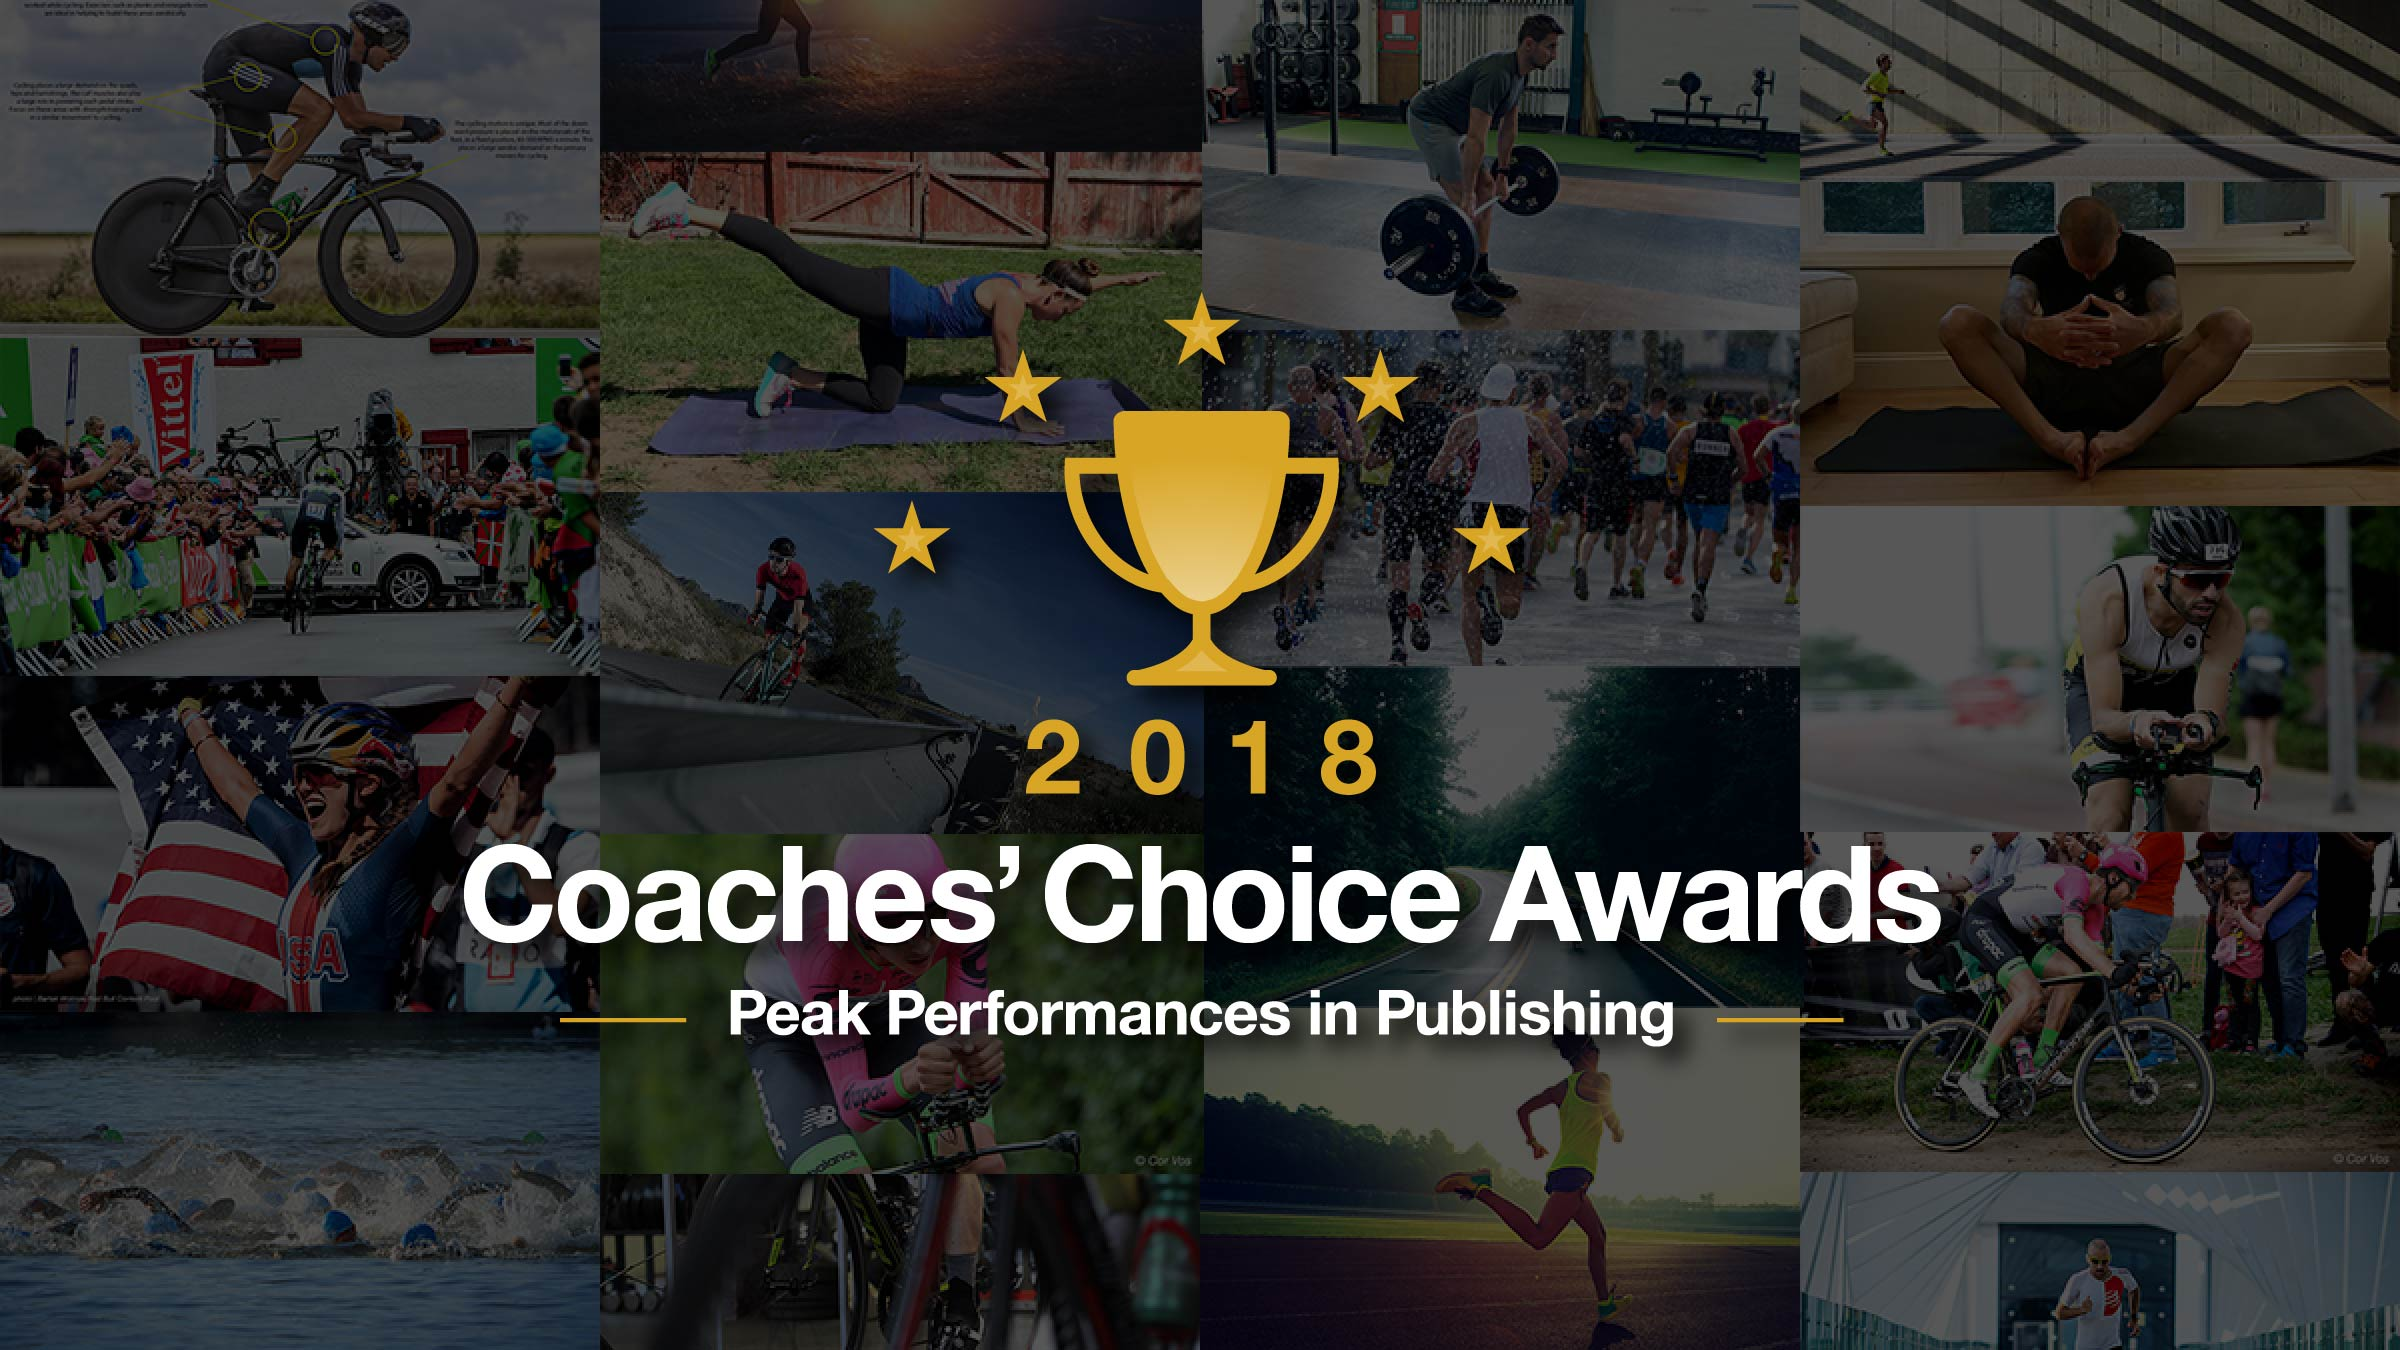 2018 Coaches' Choice Awards